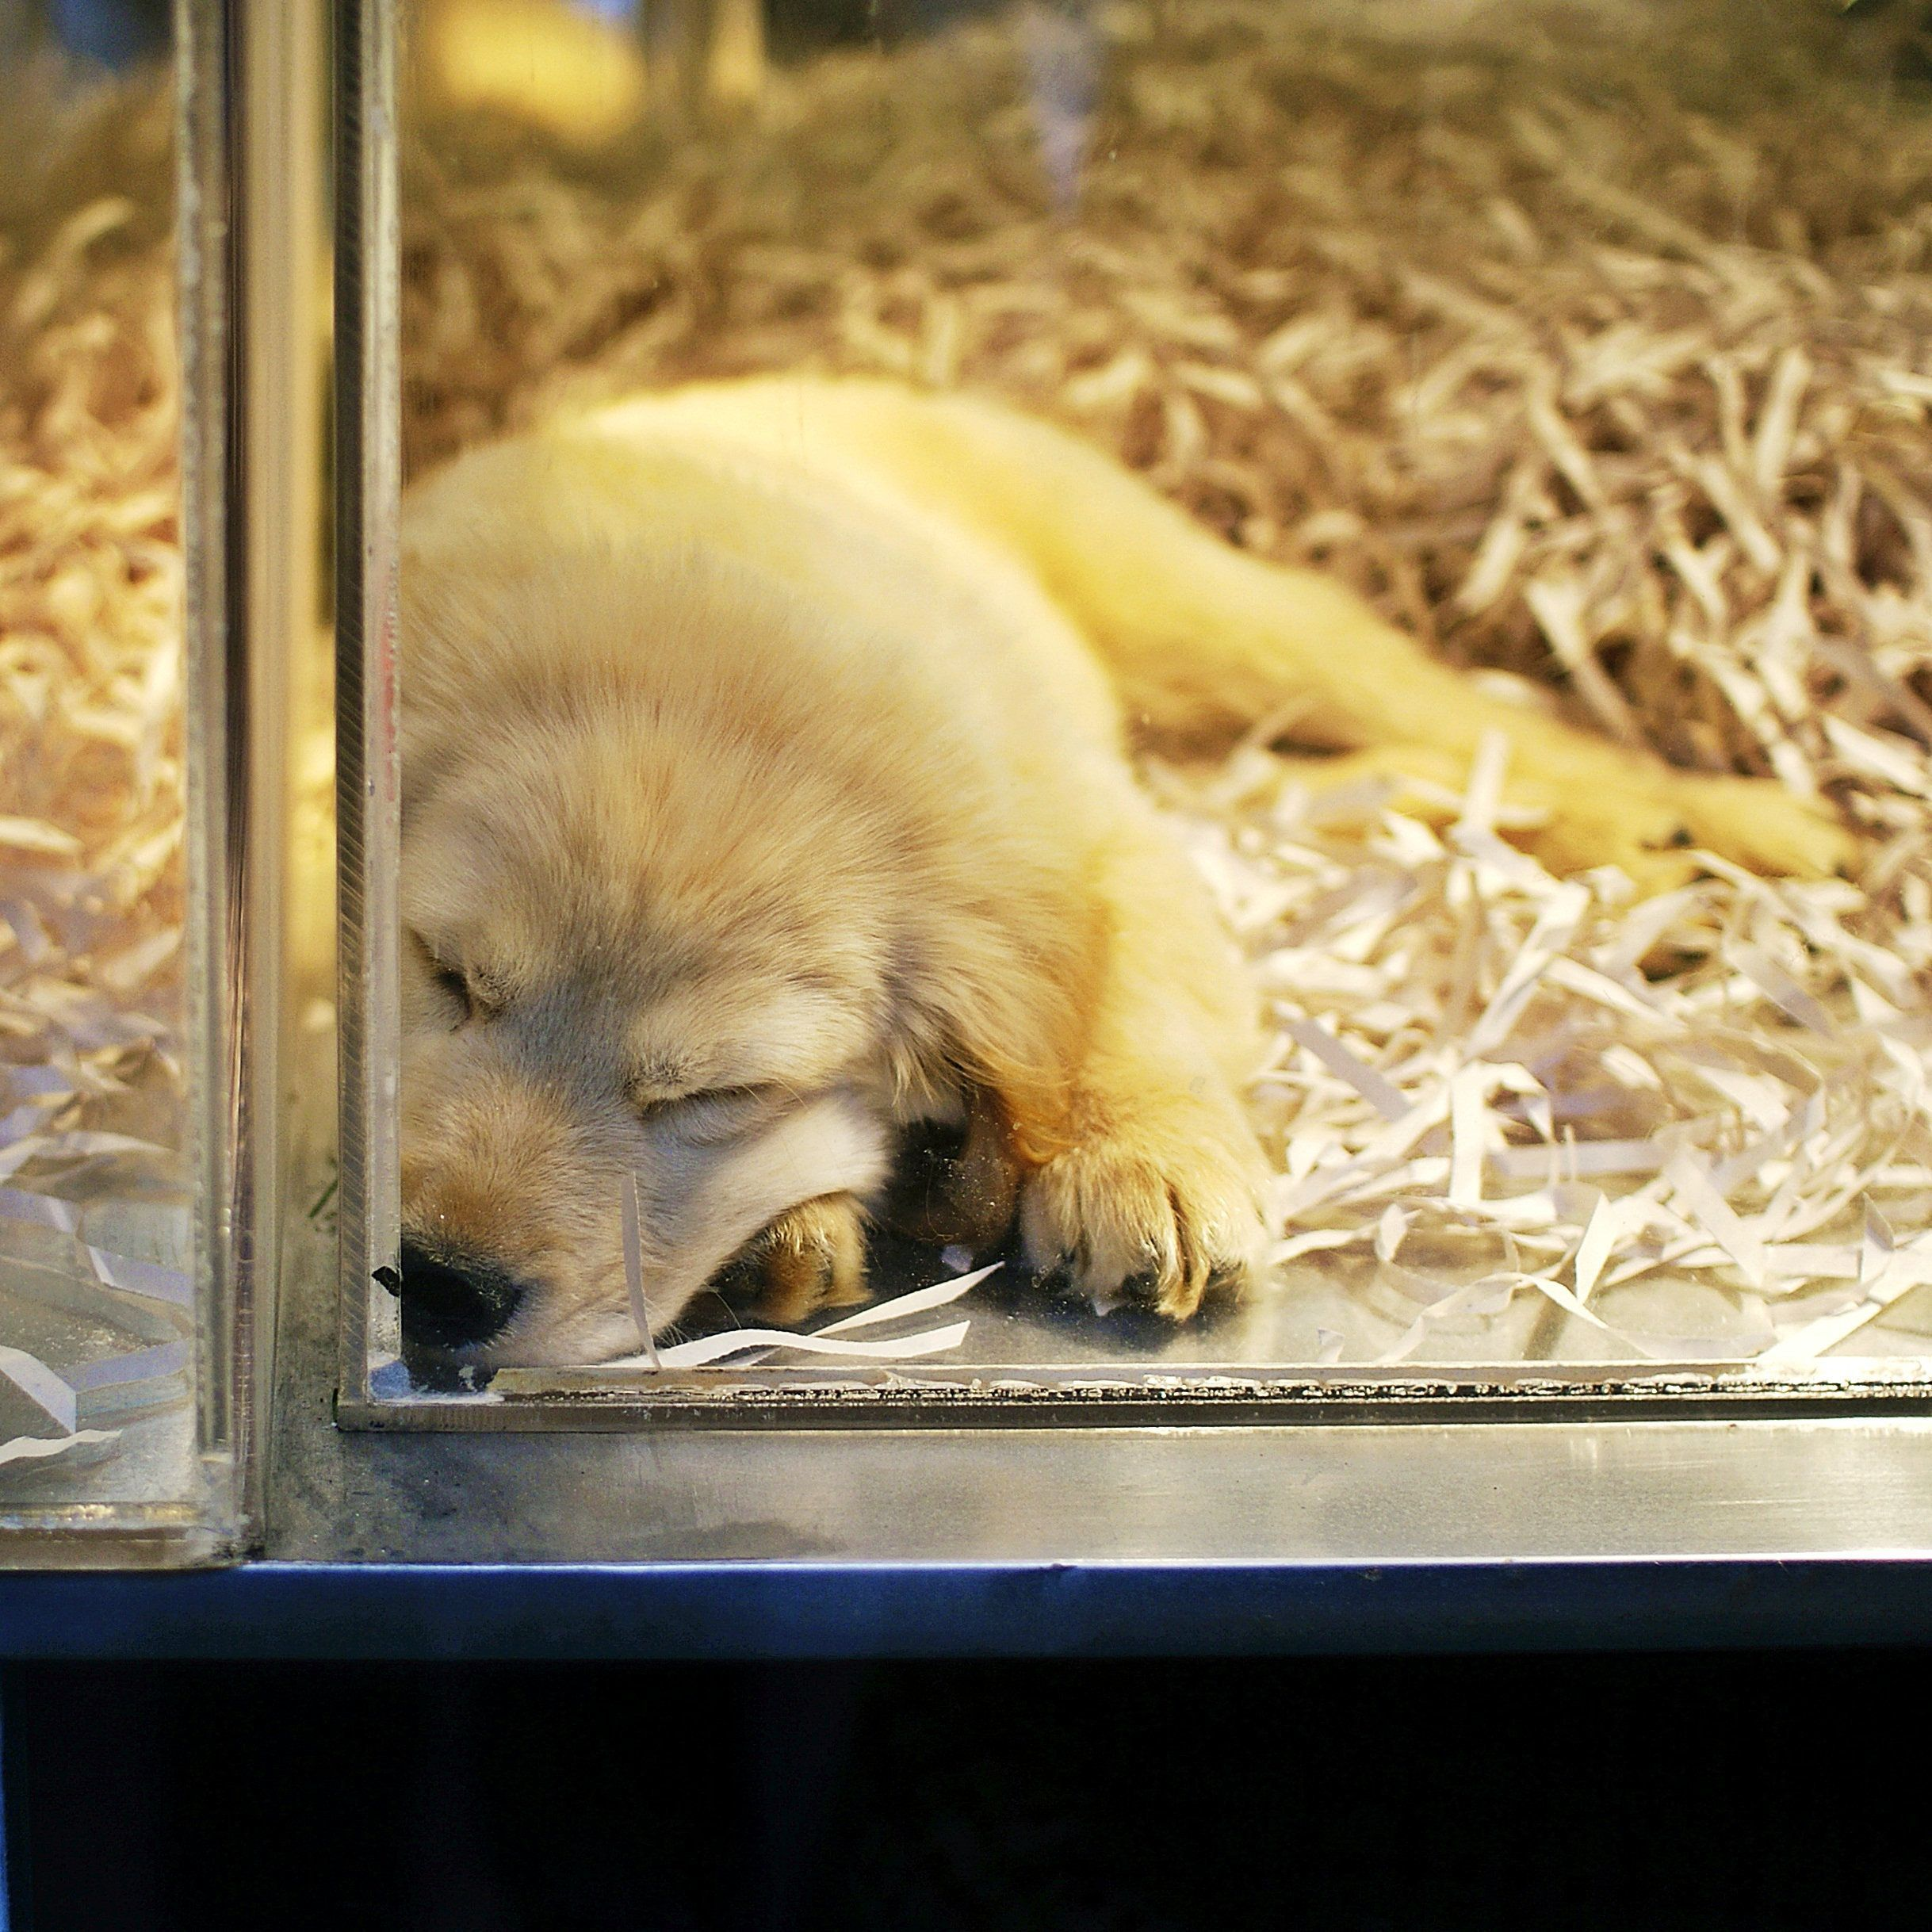 California Close To Banning Pet Shop Sales Of Non Rescue Cats Dogs And Rabbits Pets For Sale Animals Puppy Mills